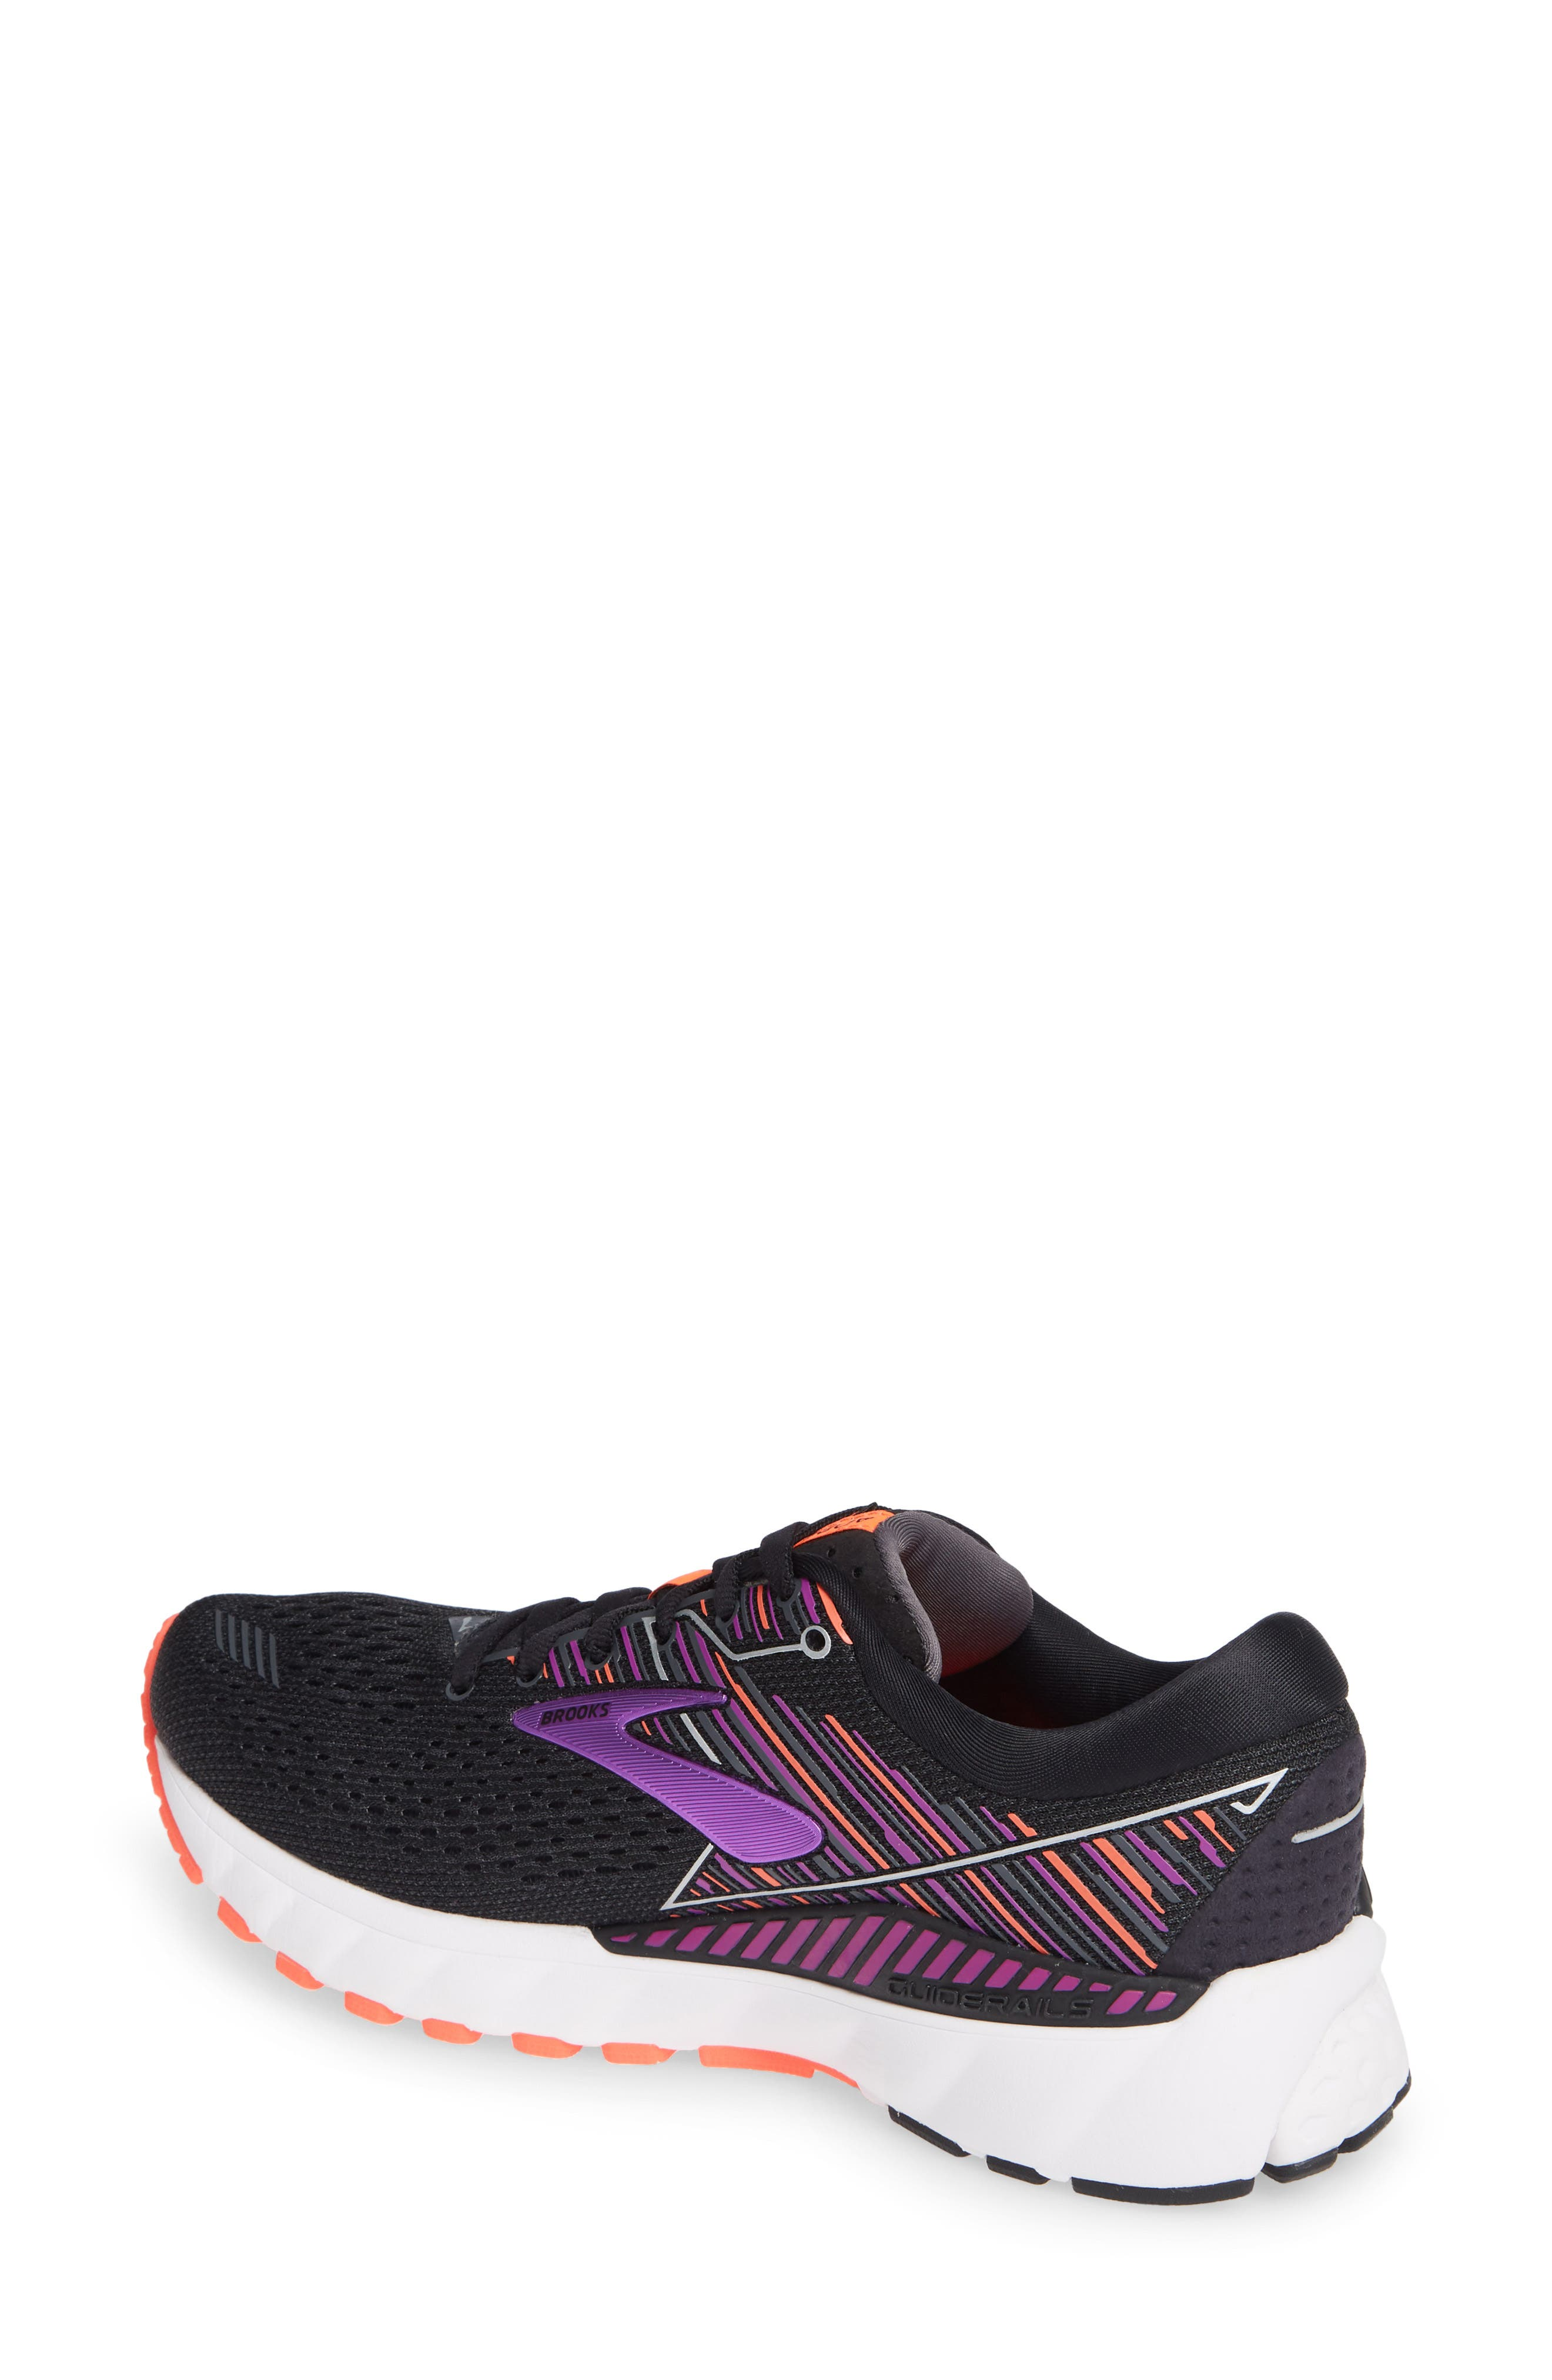 BROOKS, Adrenaline GTS 19 Running Shoe, Alternate thumbnail 2, color, BLACK/ PURPLE/ CORAL